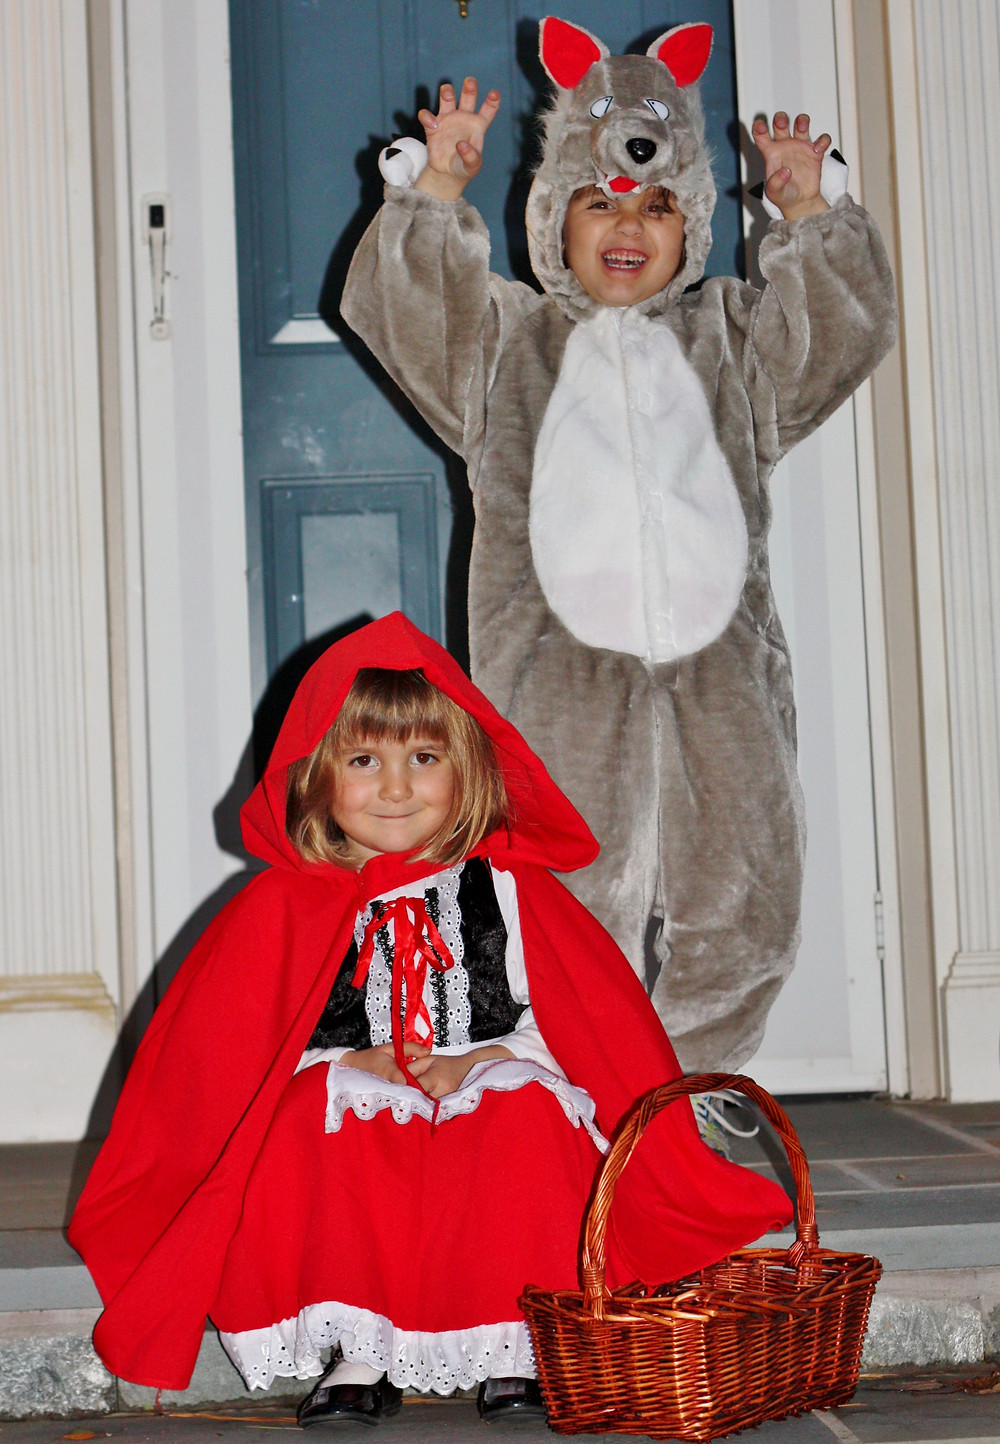 DCG Communications Director Scott Beller's young daughters dressed as Little Red Riding Hood and the Big Bad Wolf for Halloween